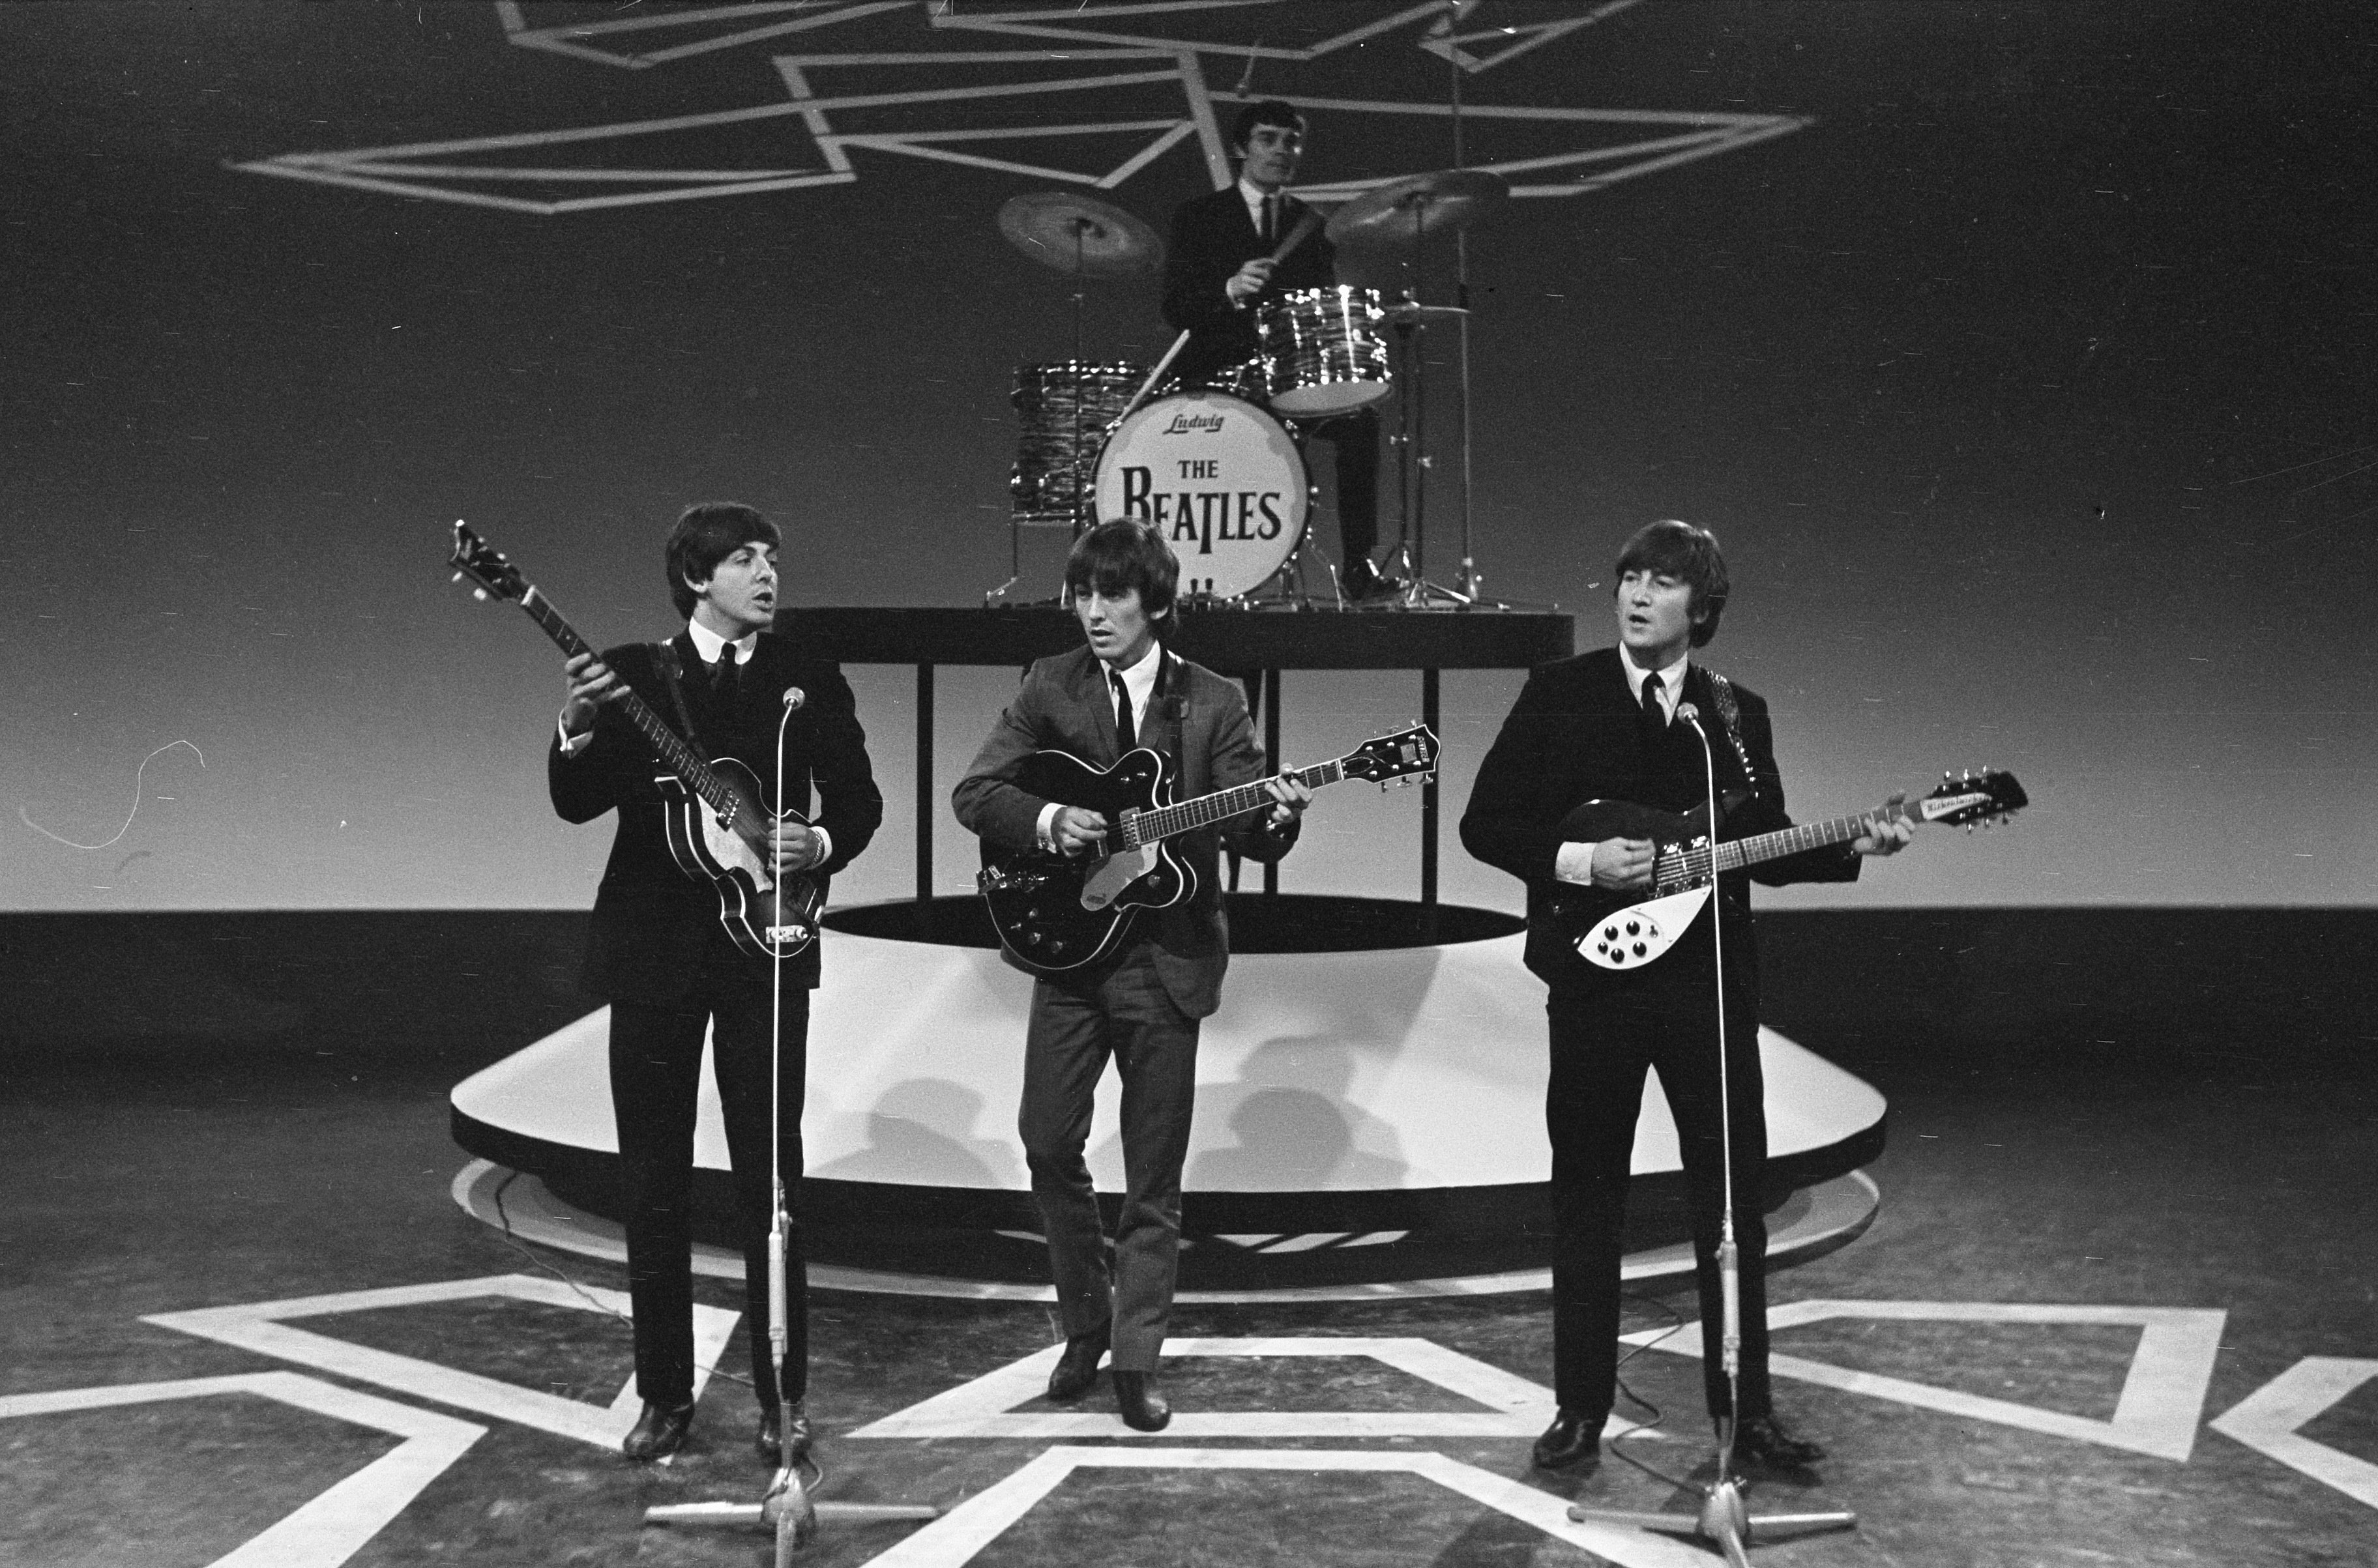 Television appearance by John Lennon (right) with The Beatles at Treslong, Hillegom, Netherlands on June 5, 1964. Jimmy Nichol is on drums, substituting for Ringo Starr at this performance.